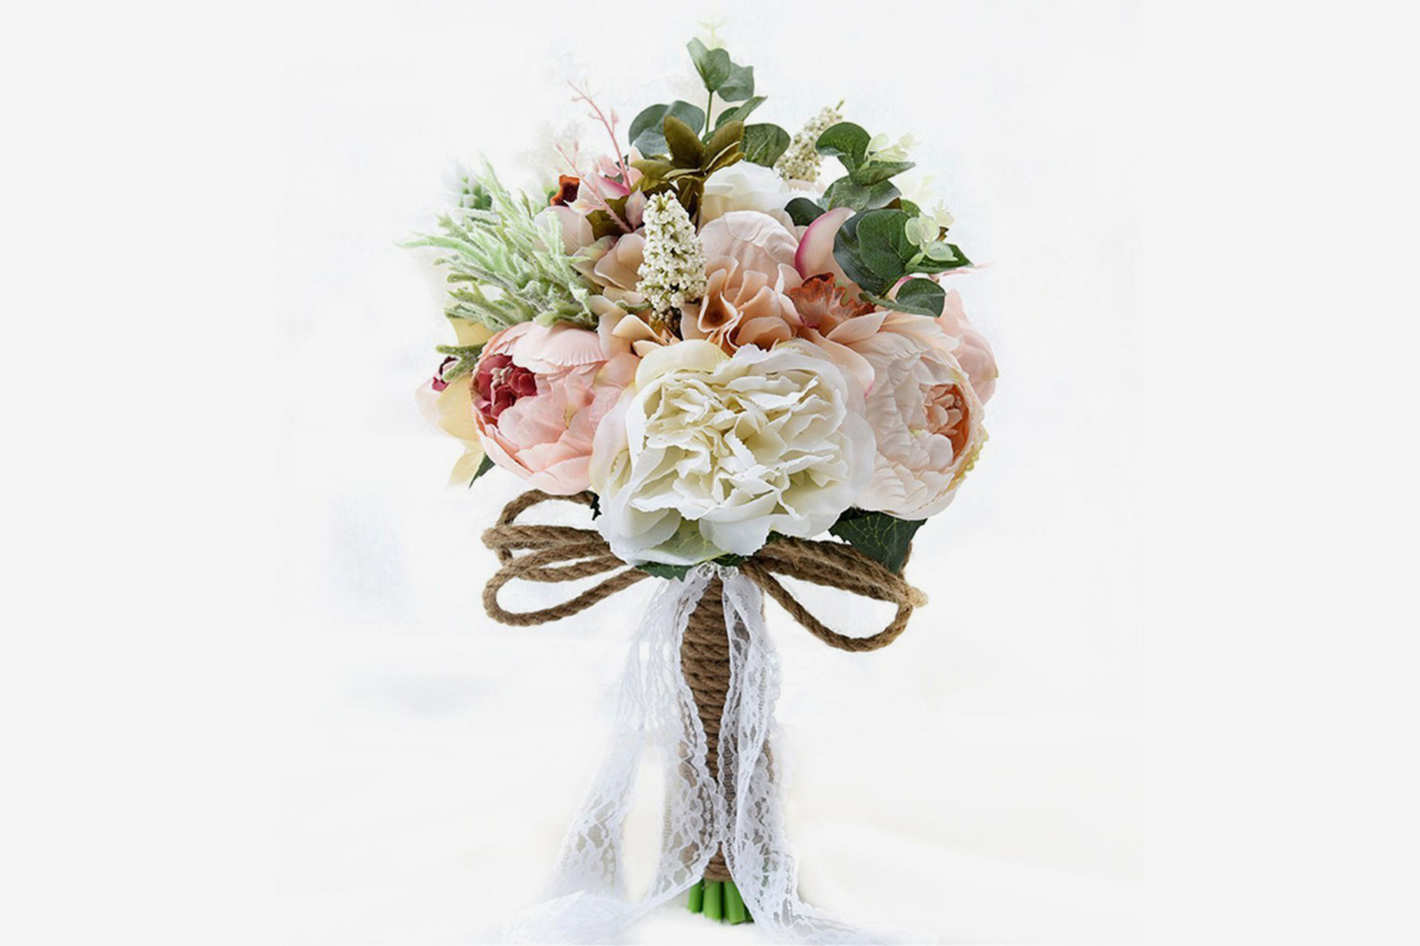 Best Artificial Flowers: Silk, Paper, and Felt Bouquets